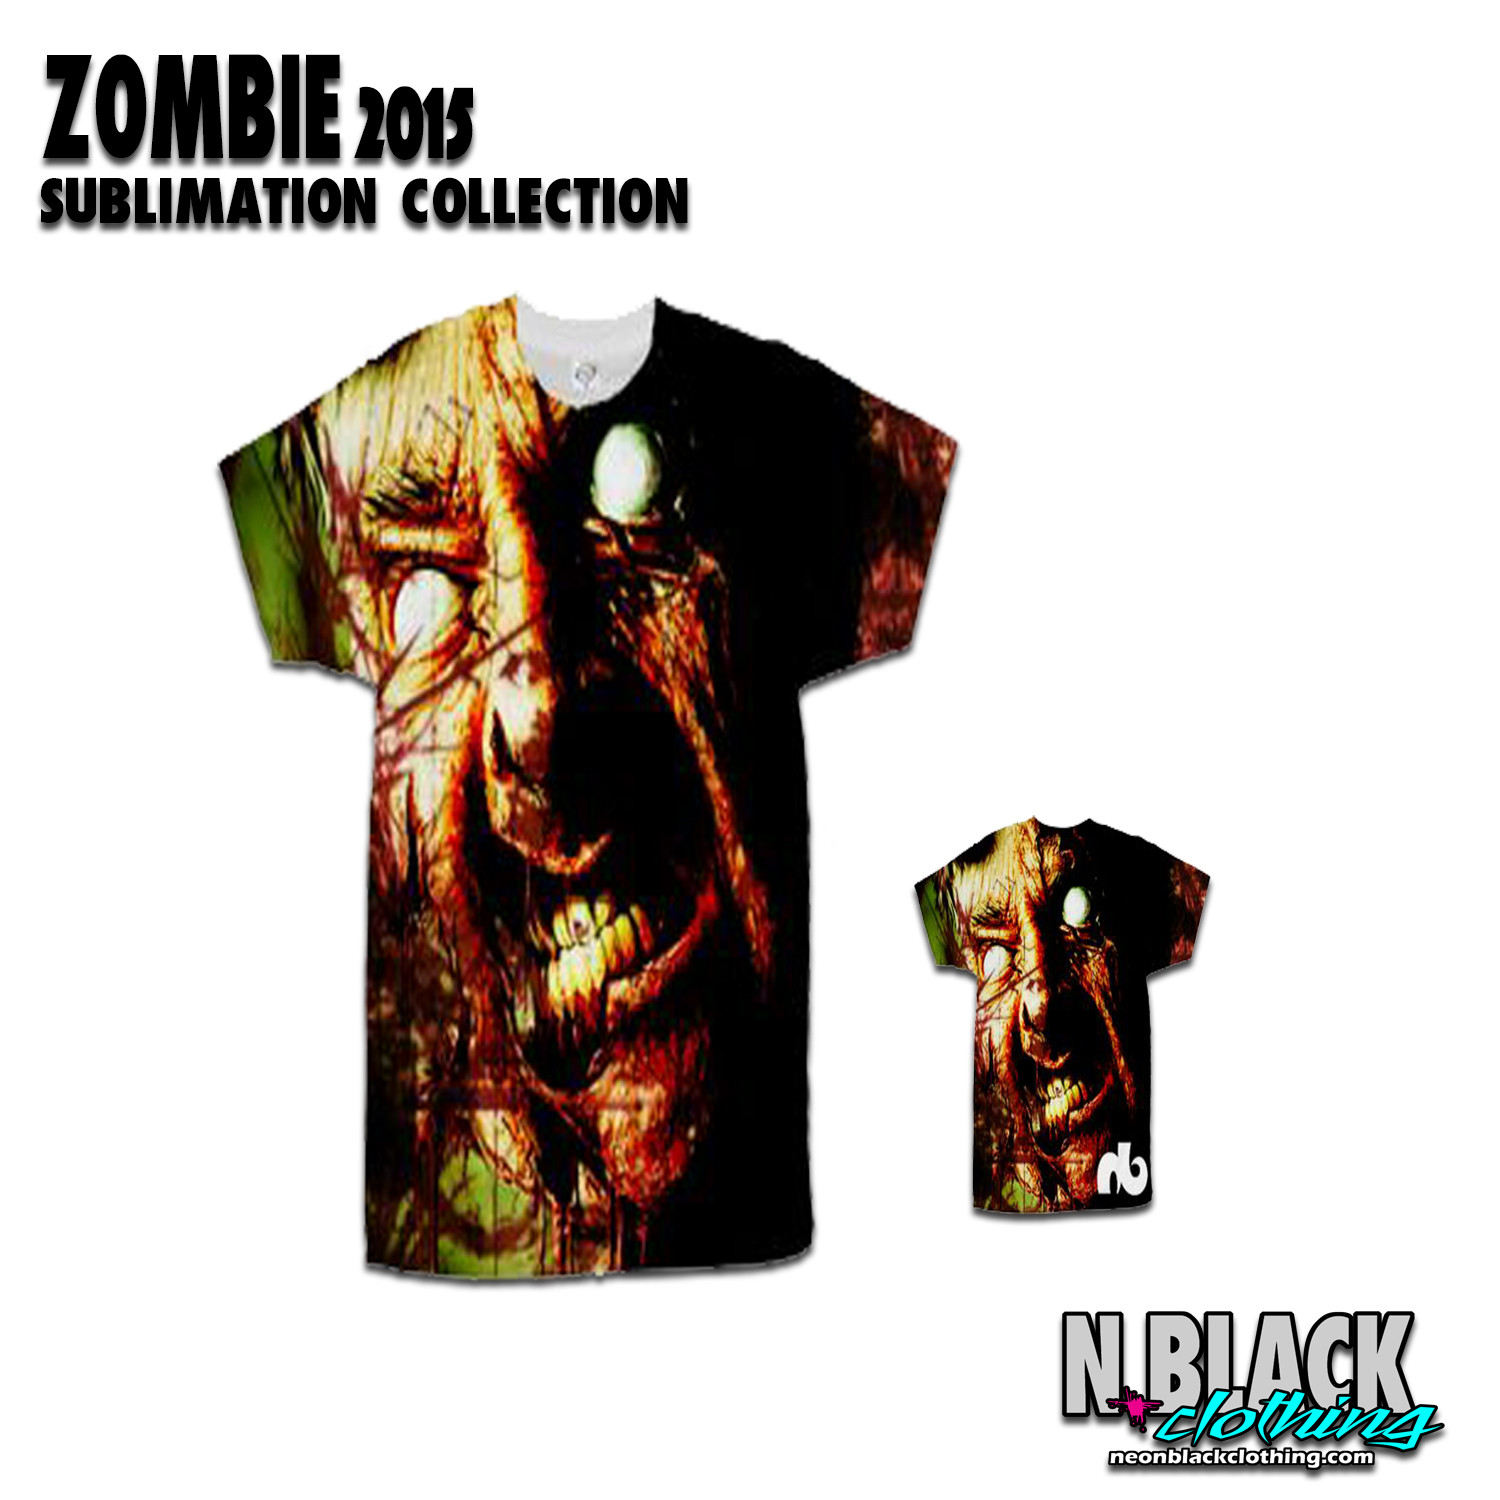 Zombie 2015 - Sublimation Collection #1.5